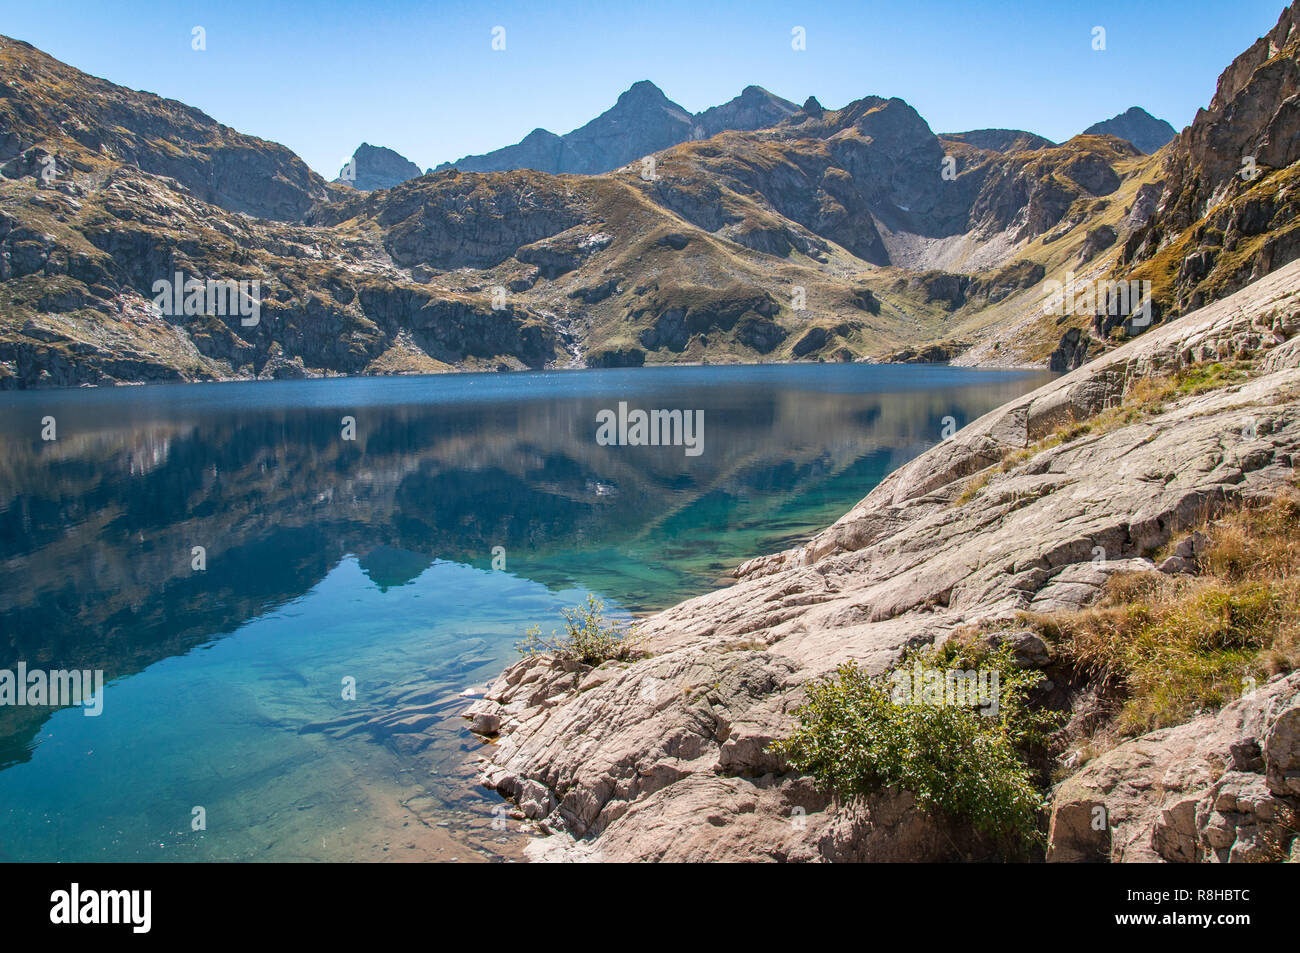 The shores of Lac d'Artouste in the Fench Pyrenees on a calm Autumn day with the mountains reflecting in the water Stock Photo